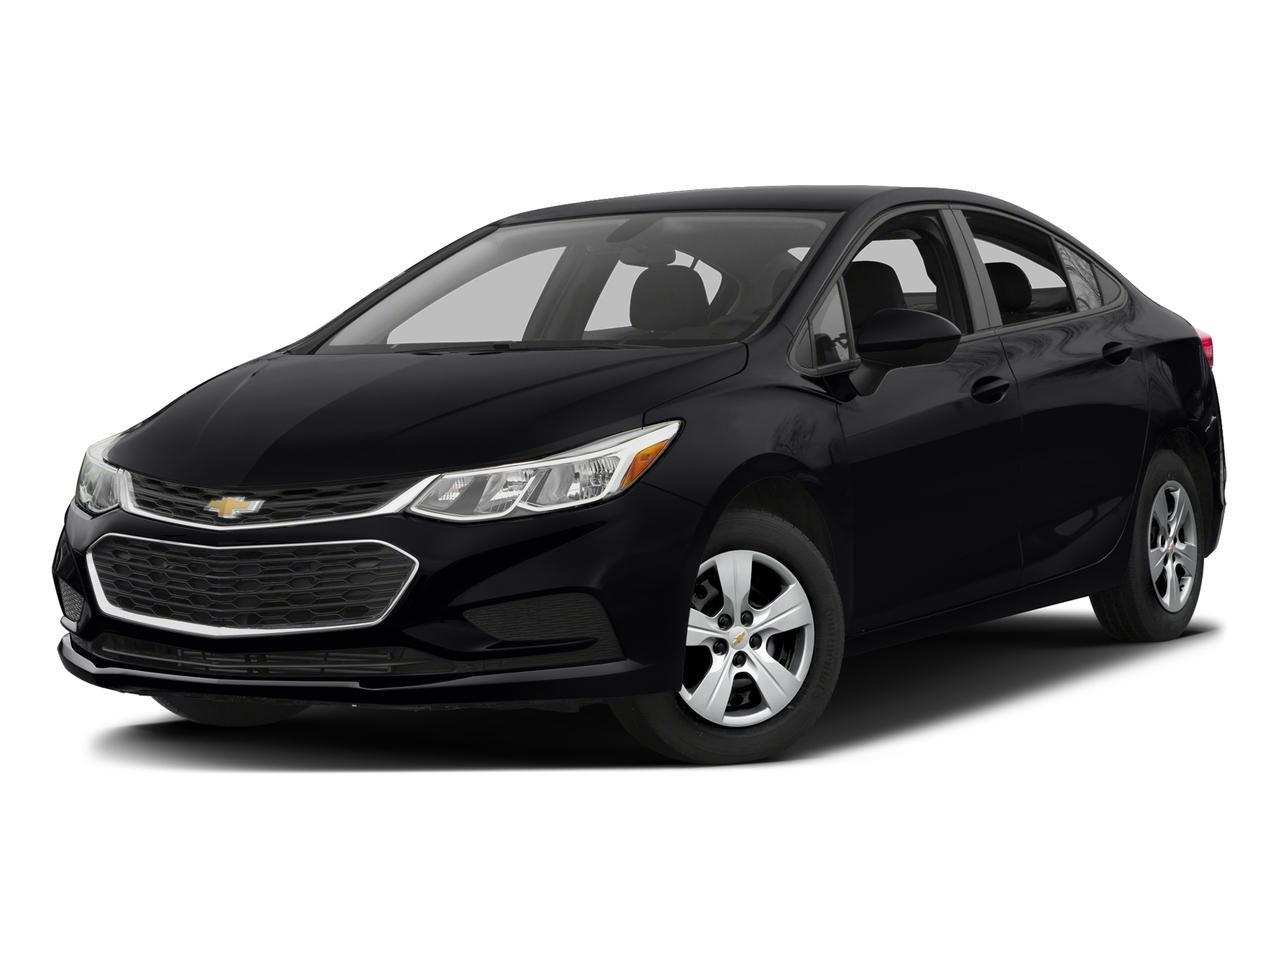 2017 Chevrolet Cruze Vehicle Photo in Independence, MO 64055